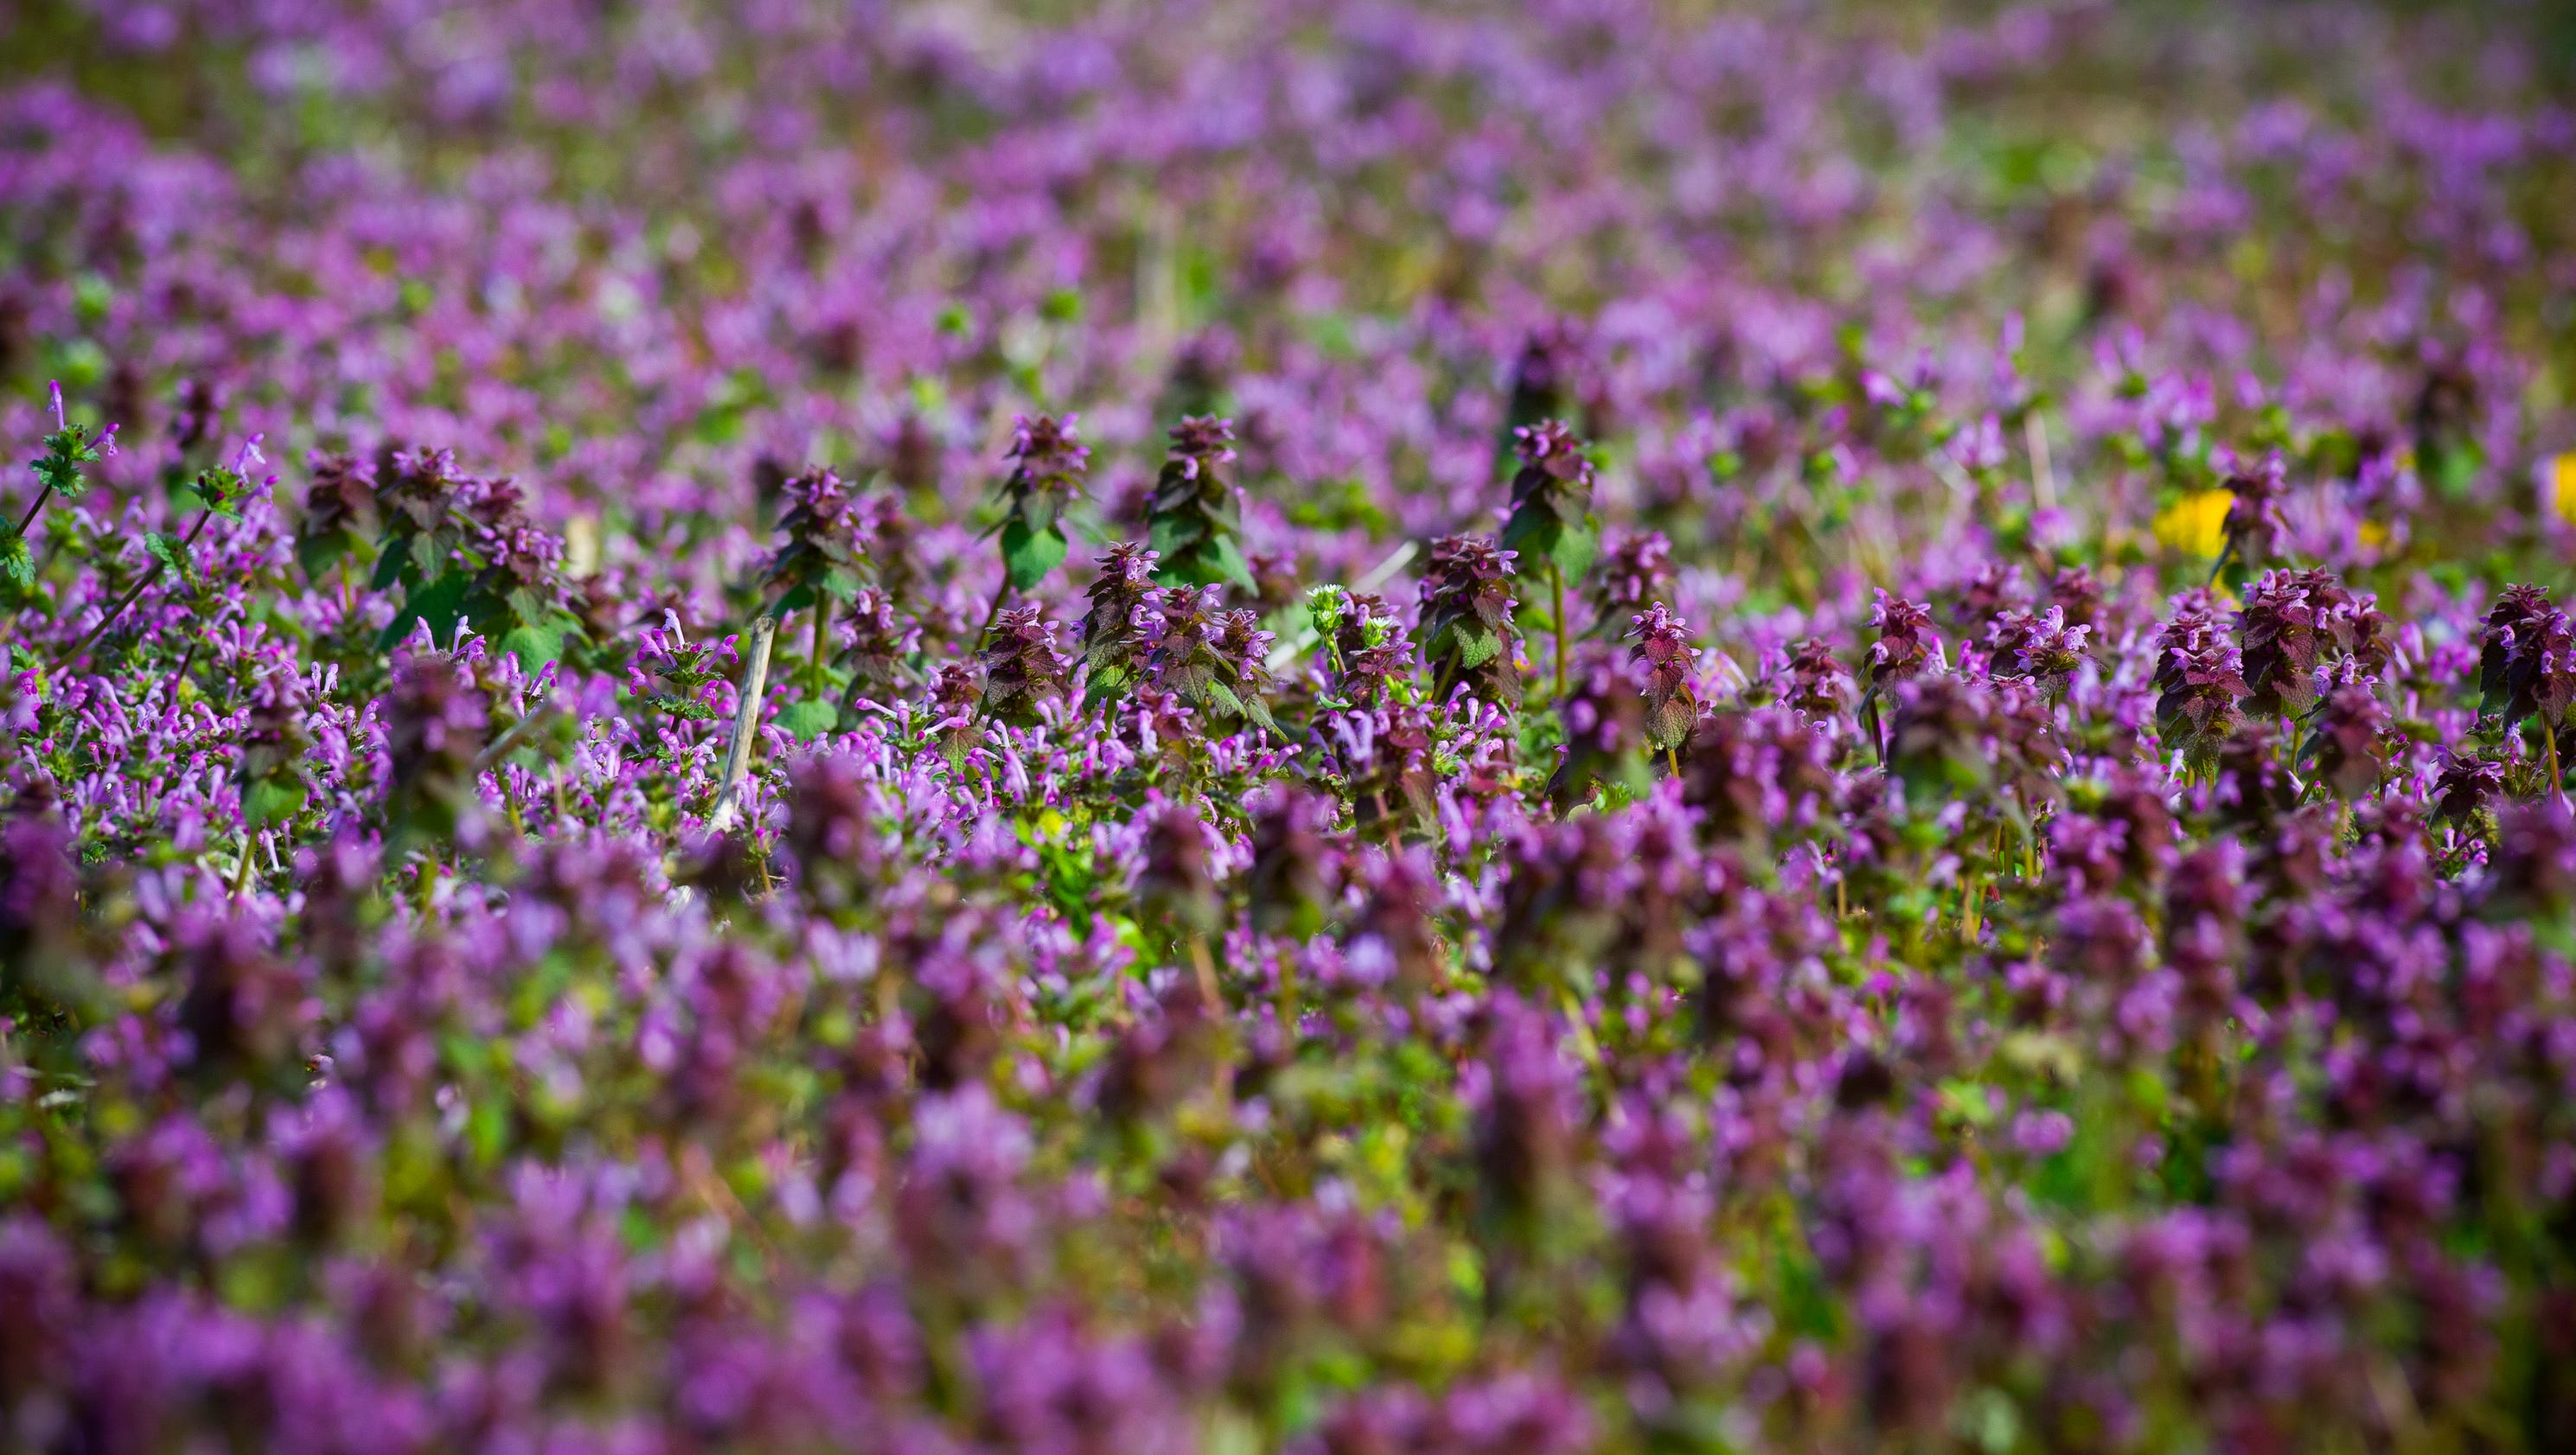 Those Purple Flowers In The Corn Fields Signal A Tough Decision For Farmers